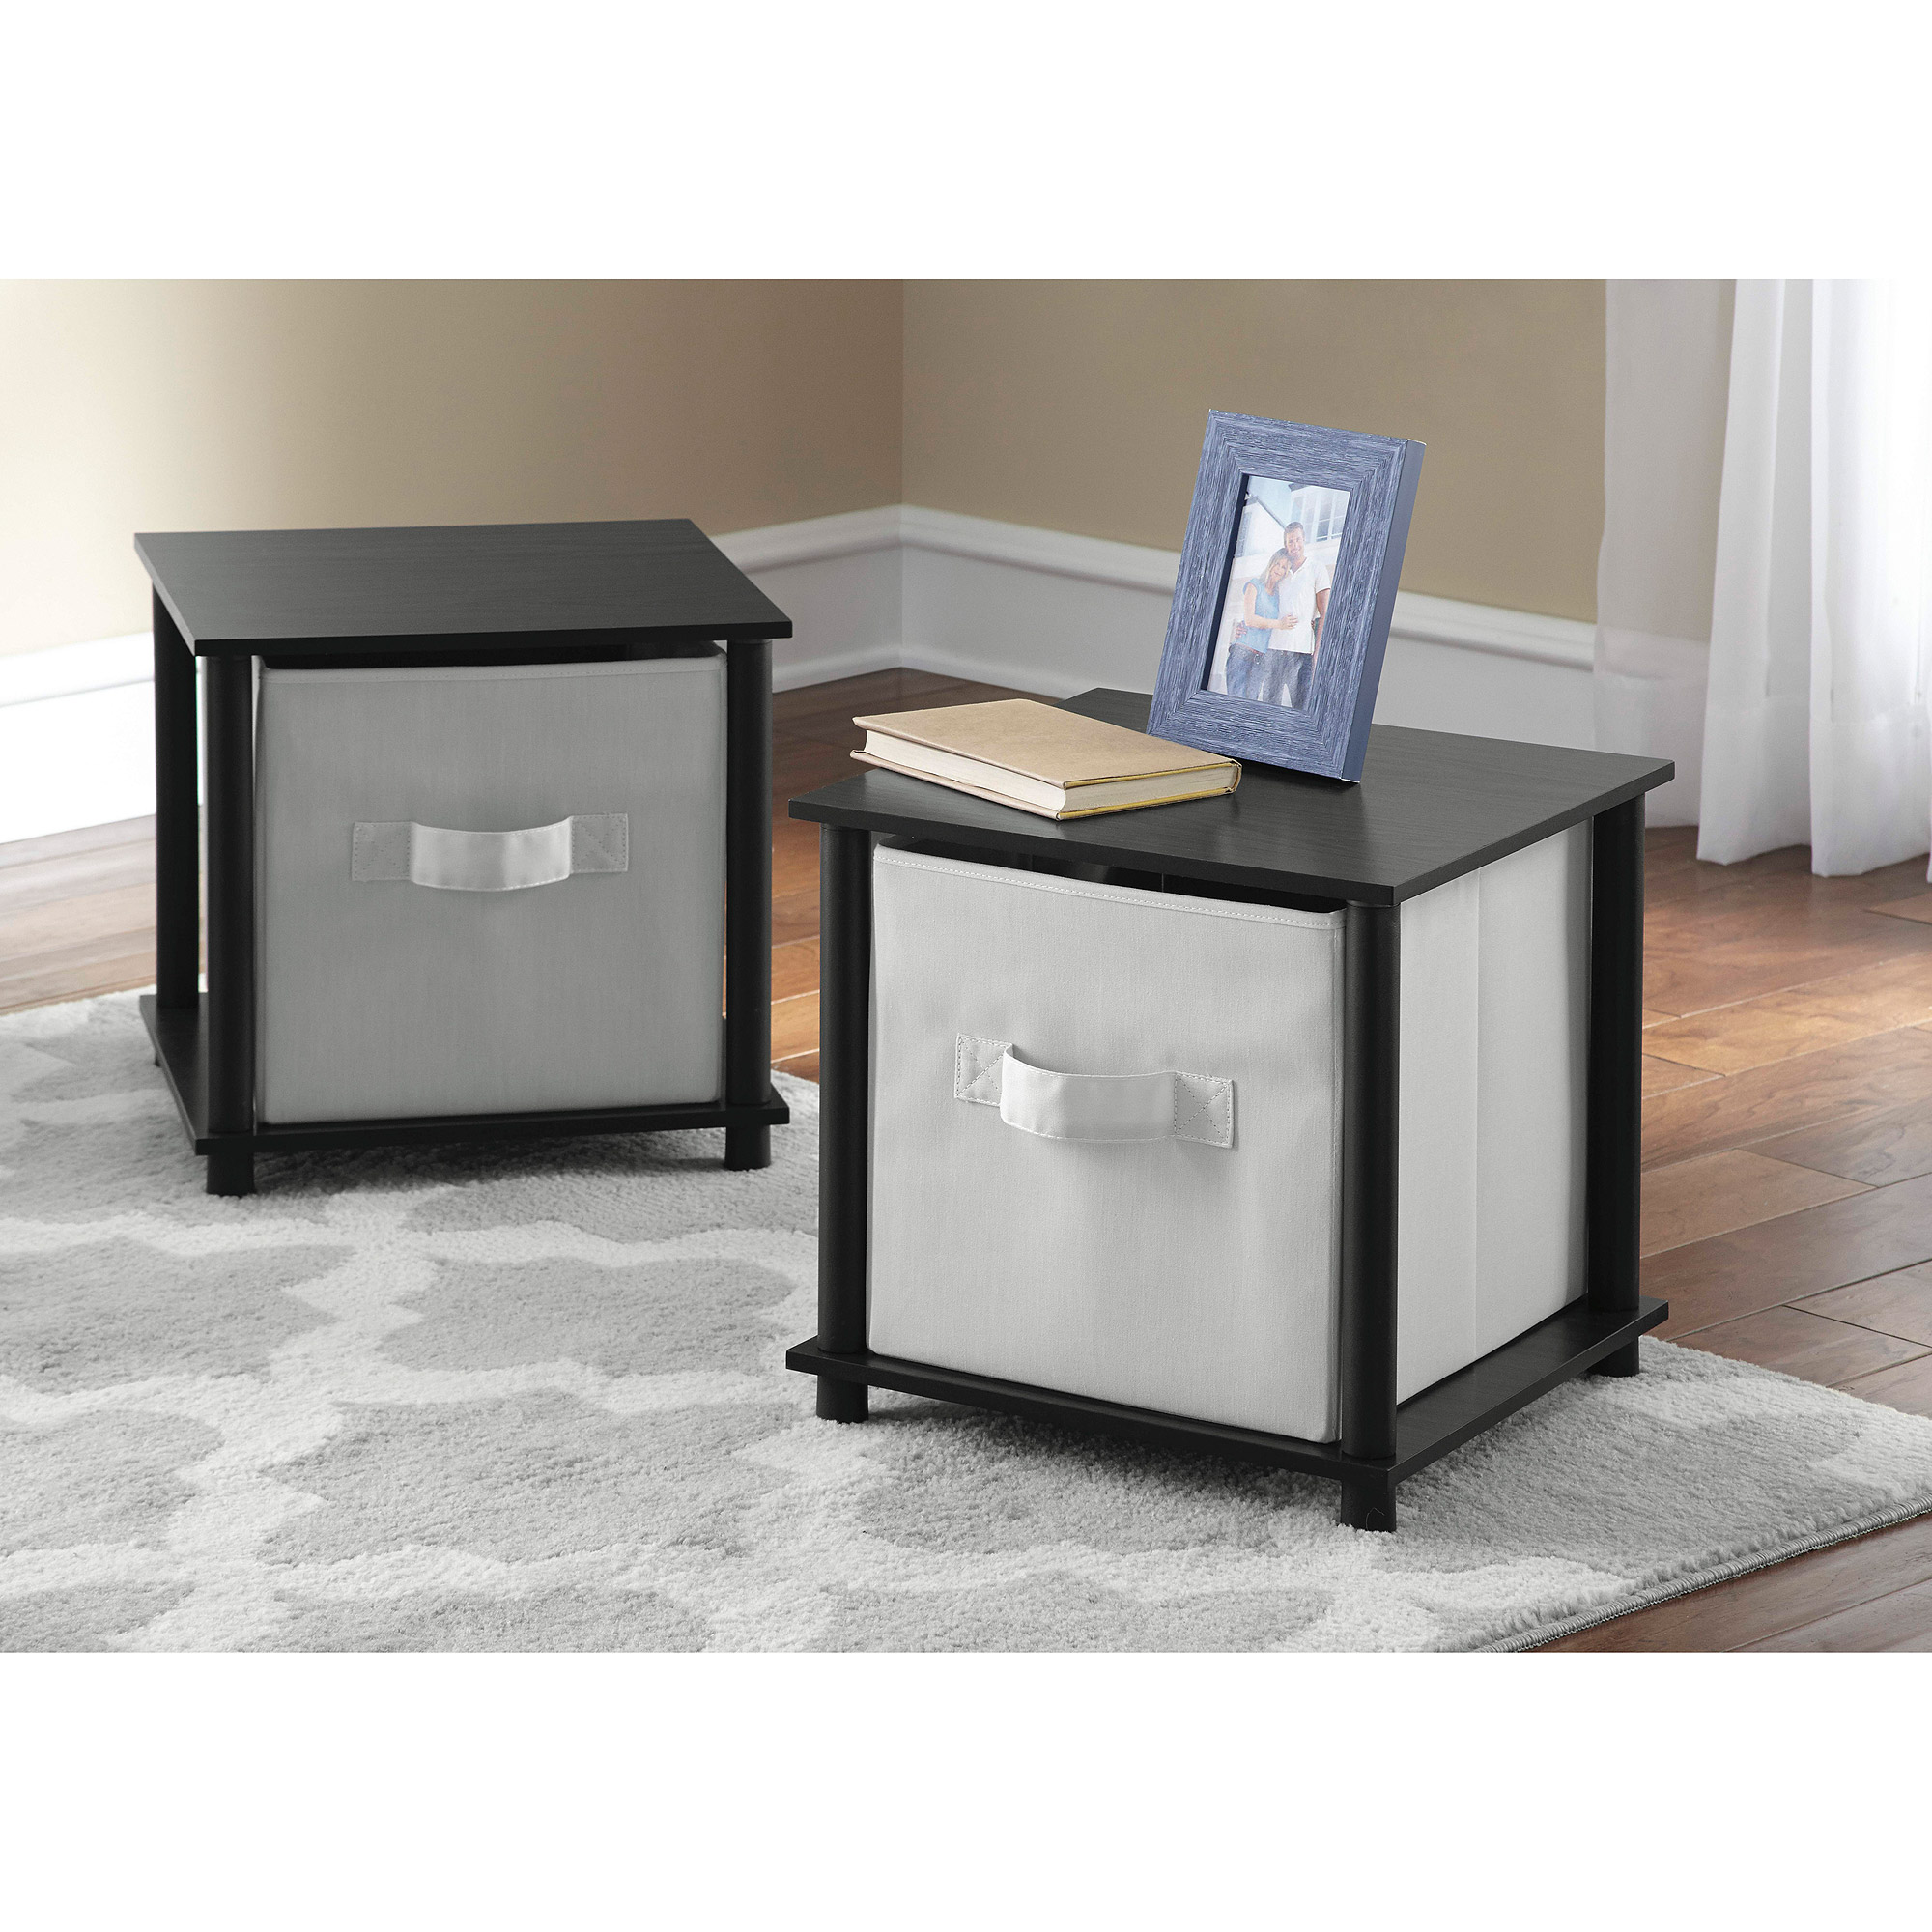 western table centerpieces the super favorite mainstays nightstand end multiple finishes just optim espresso explore related products bedroom tables narrow telephone safety glass